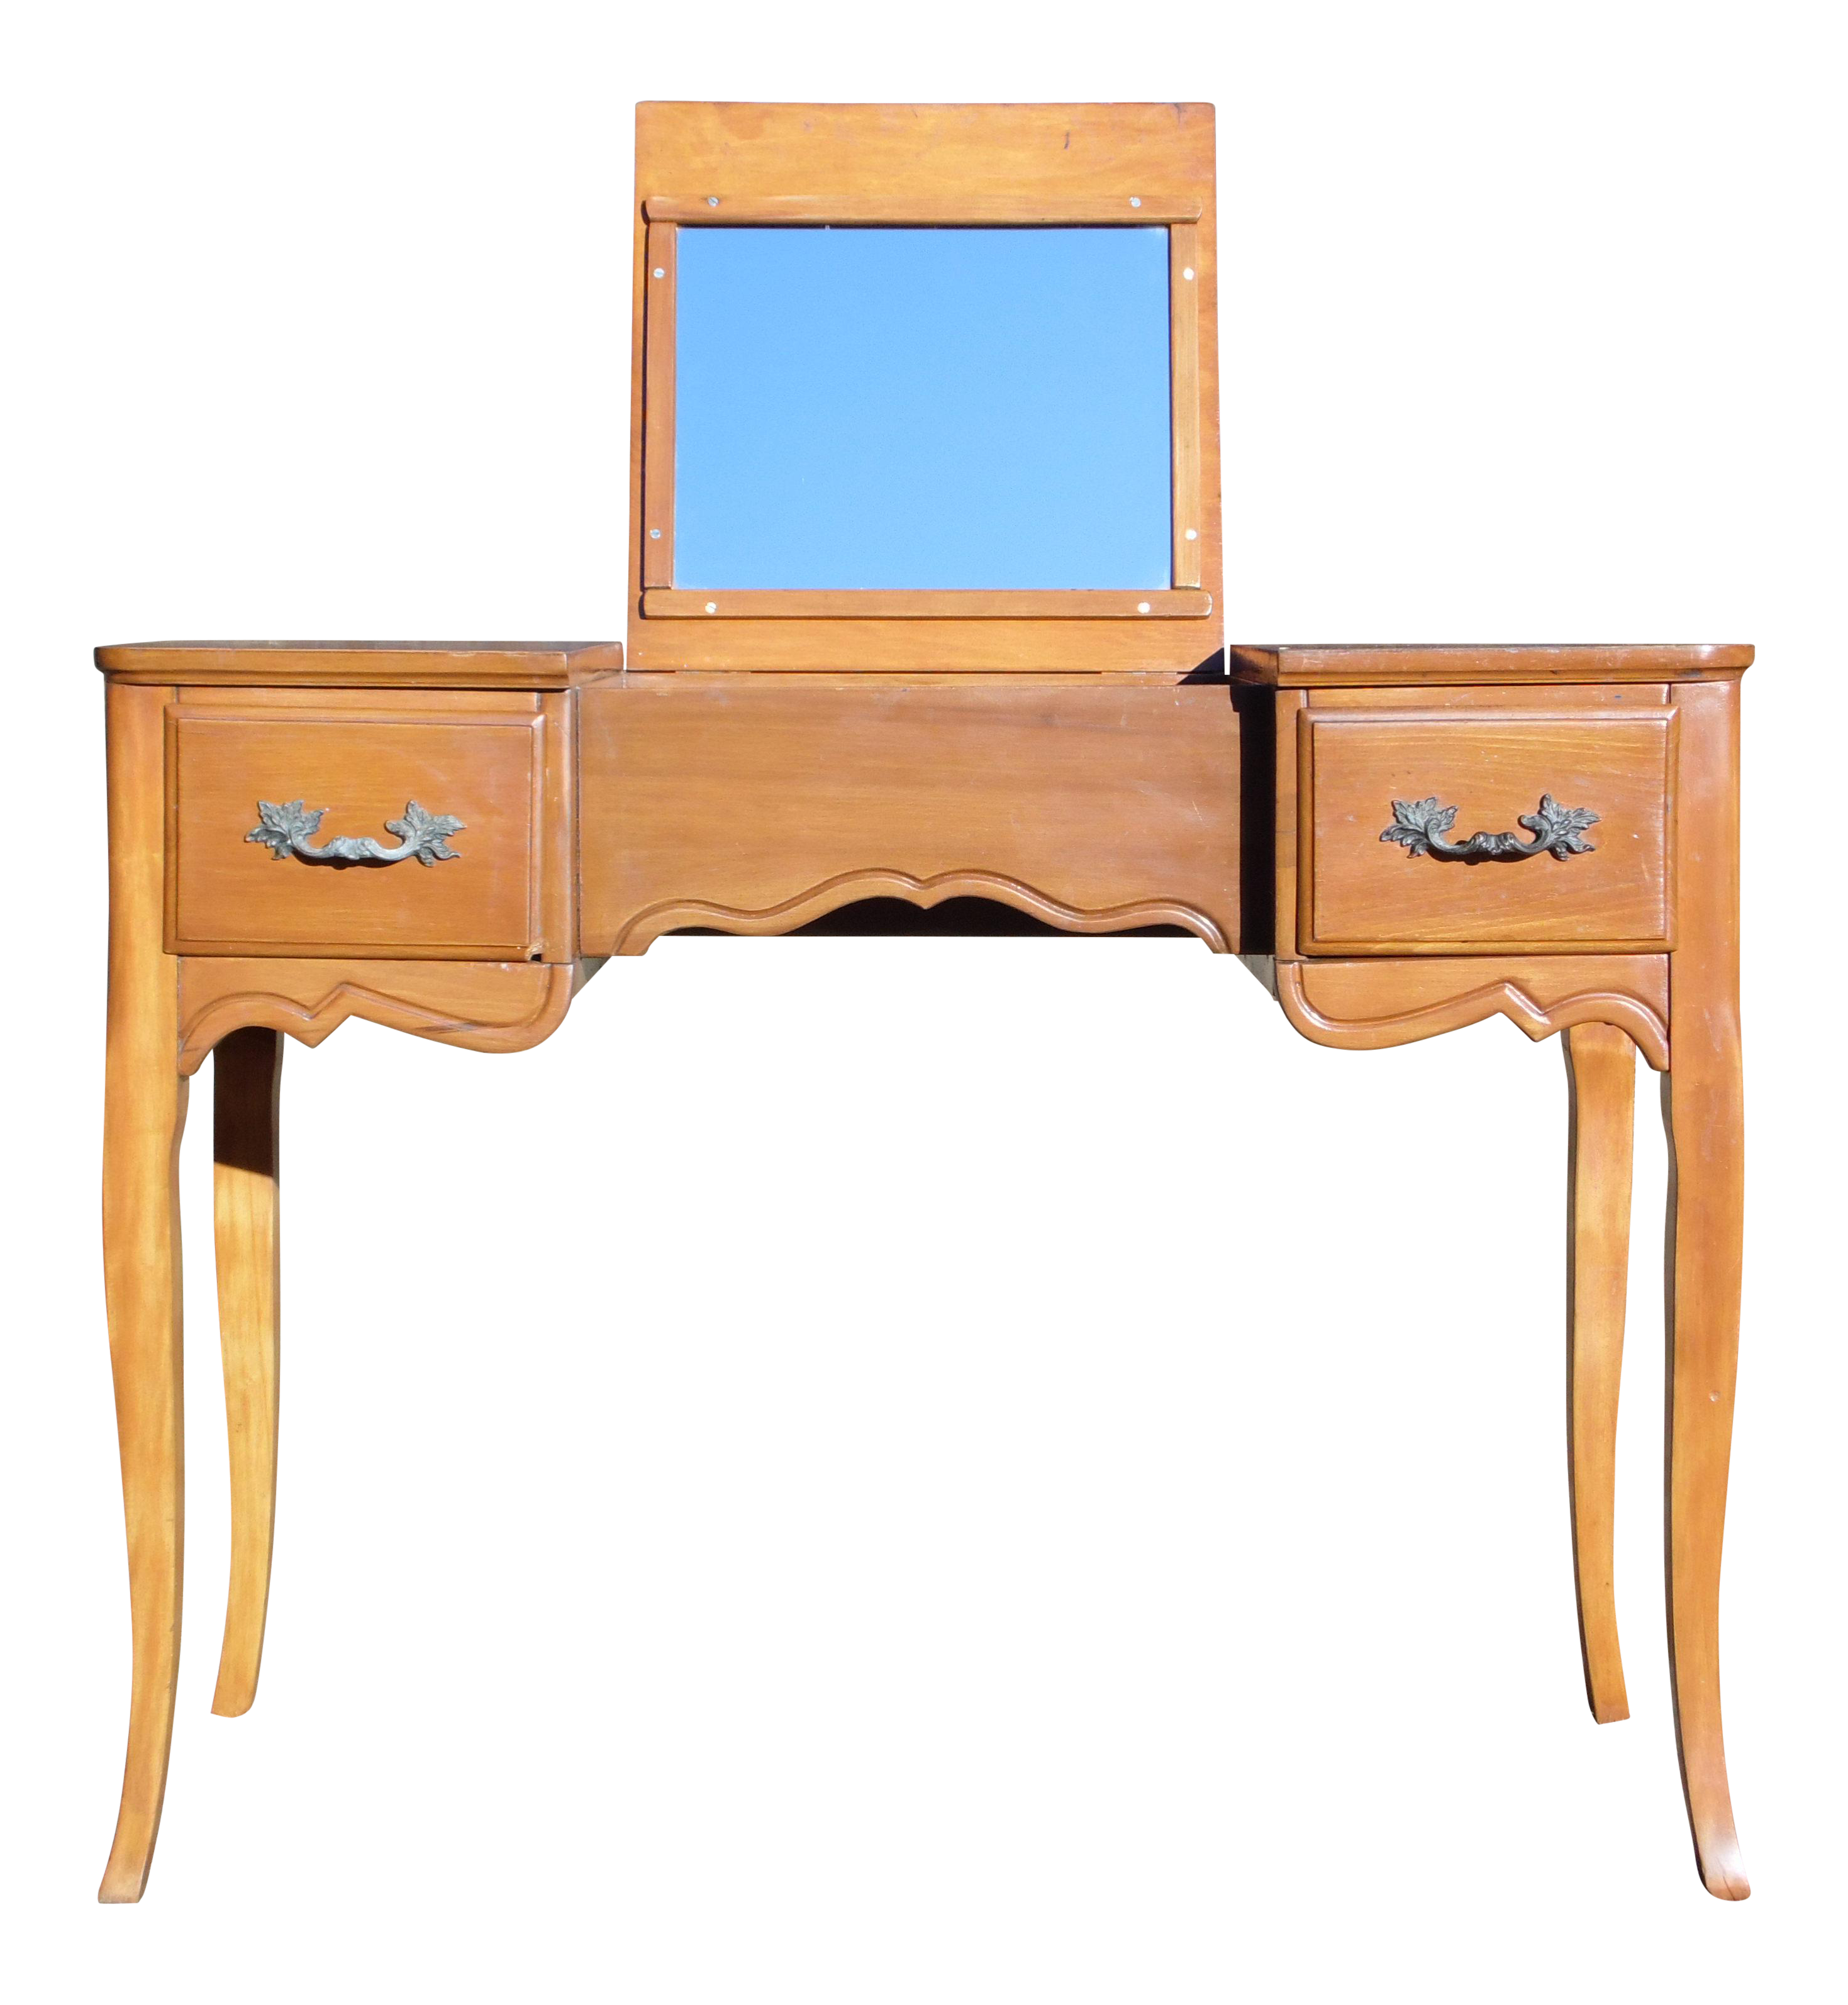 Vanity drawing dressing table. Vintage french provincial style